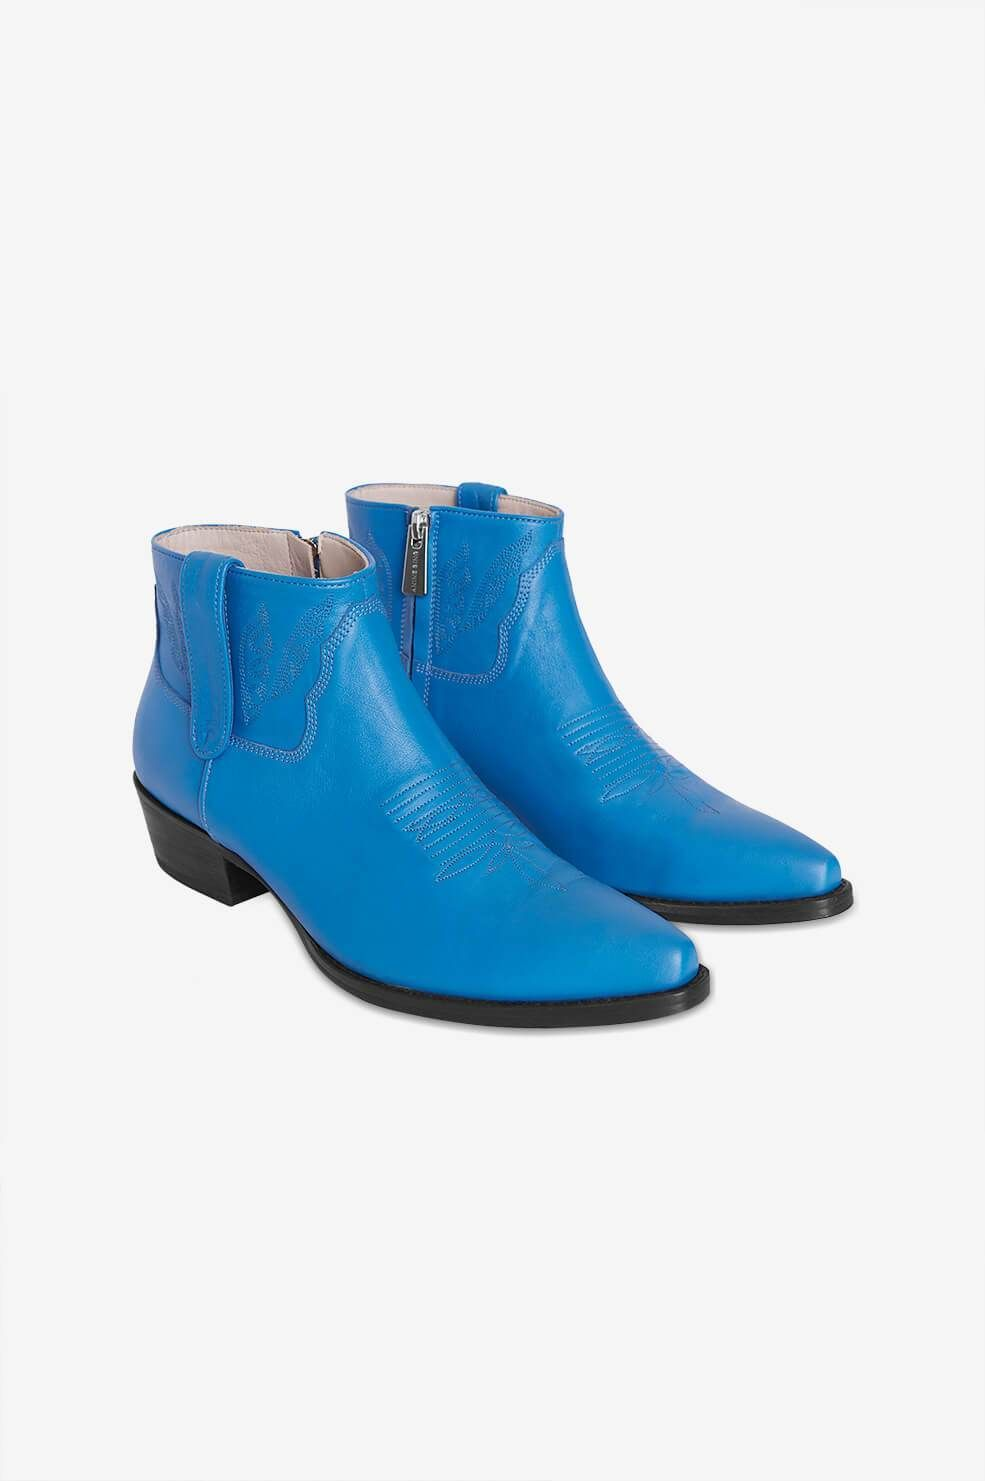 ANINE BING AXEL BOOTS - BLUE   Boots